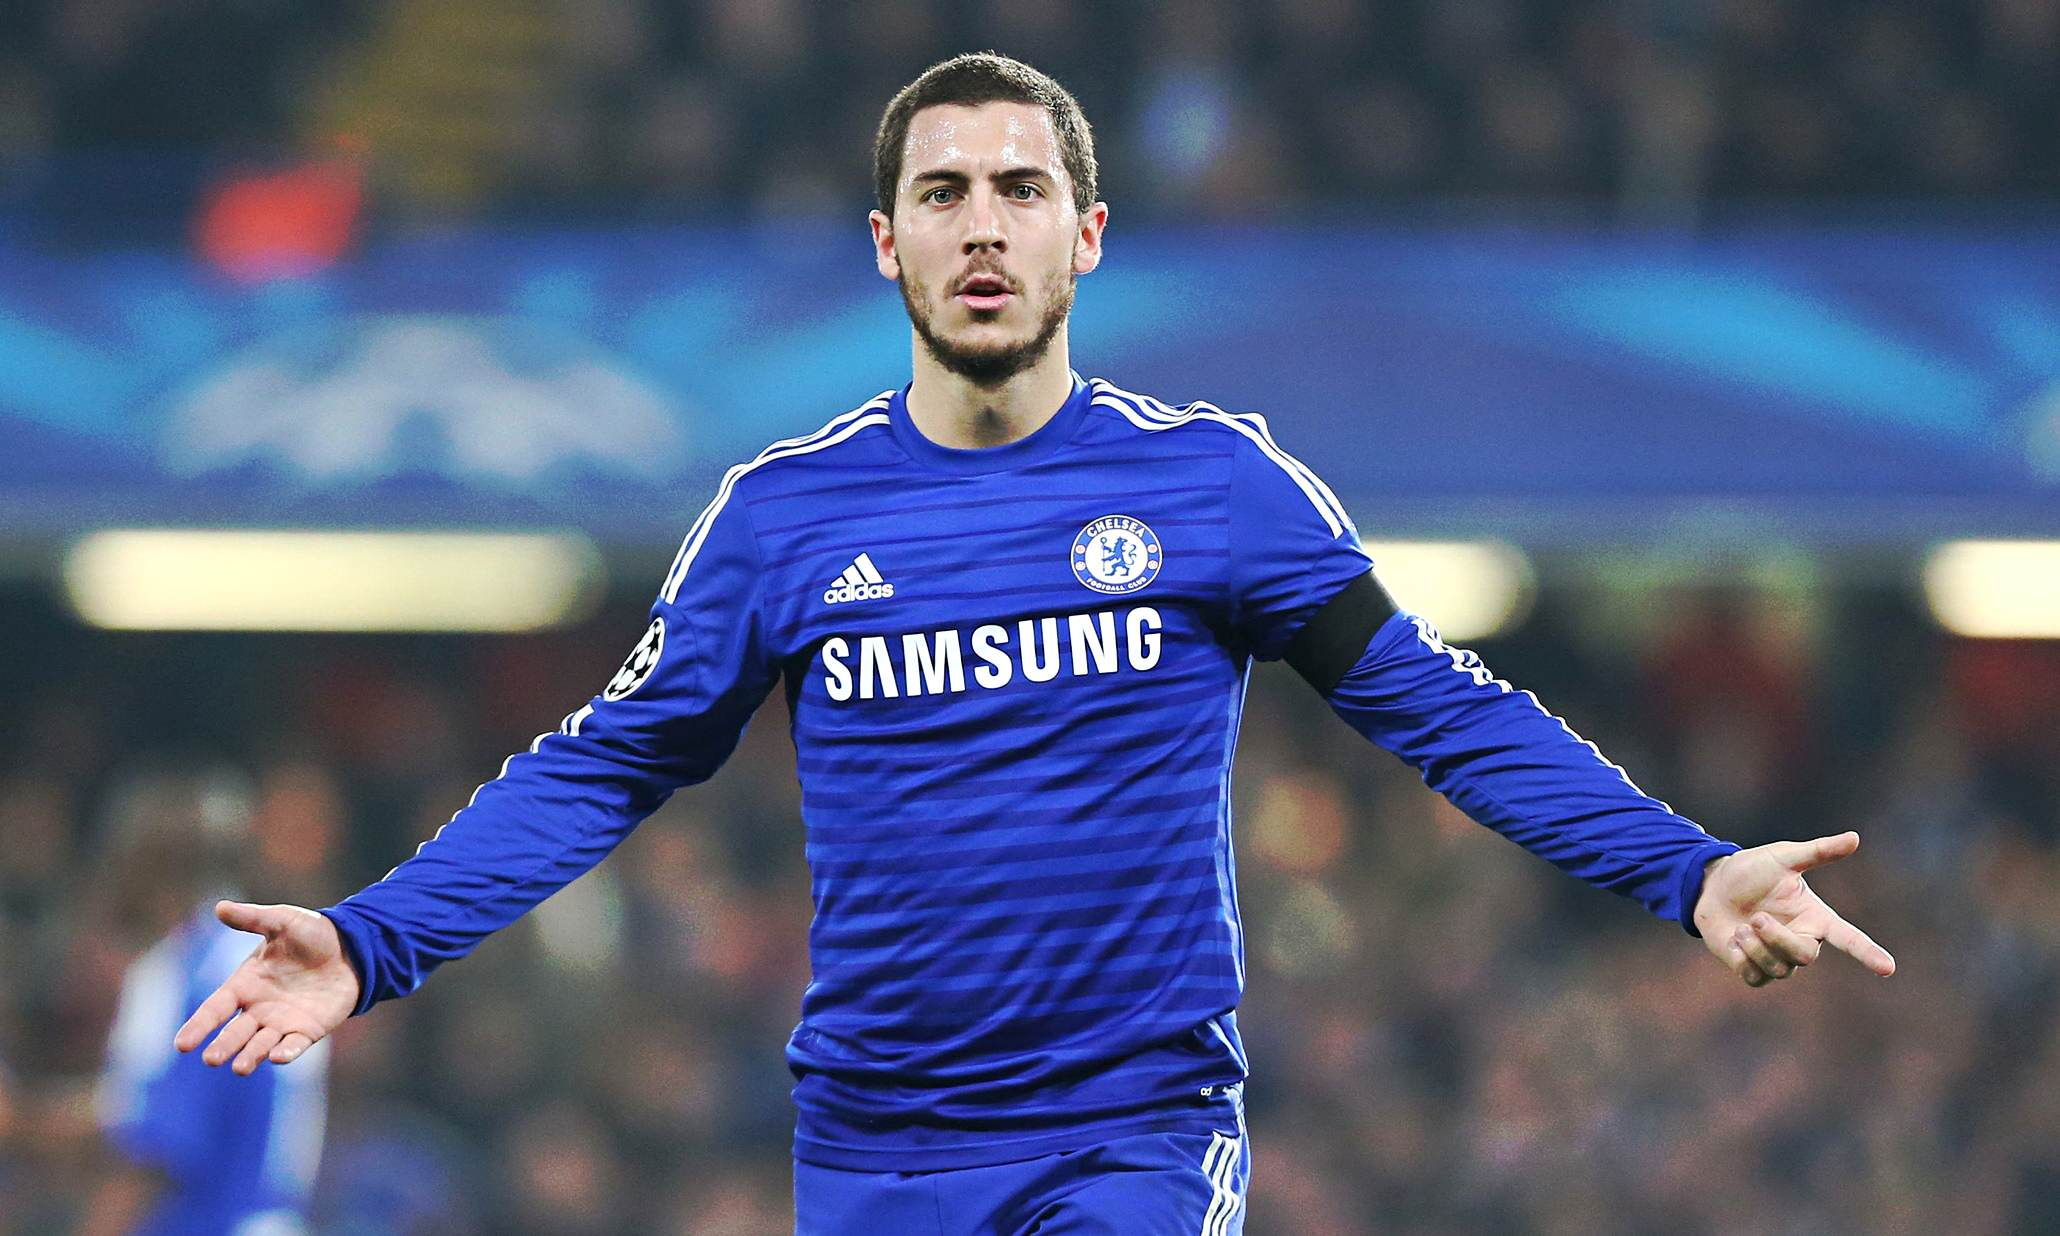 Hazard mail 1 Ten Players Who Are Hated By Their Own Fans